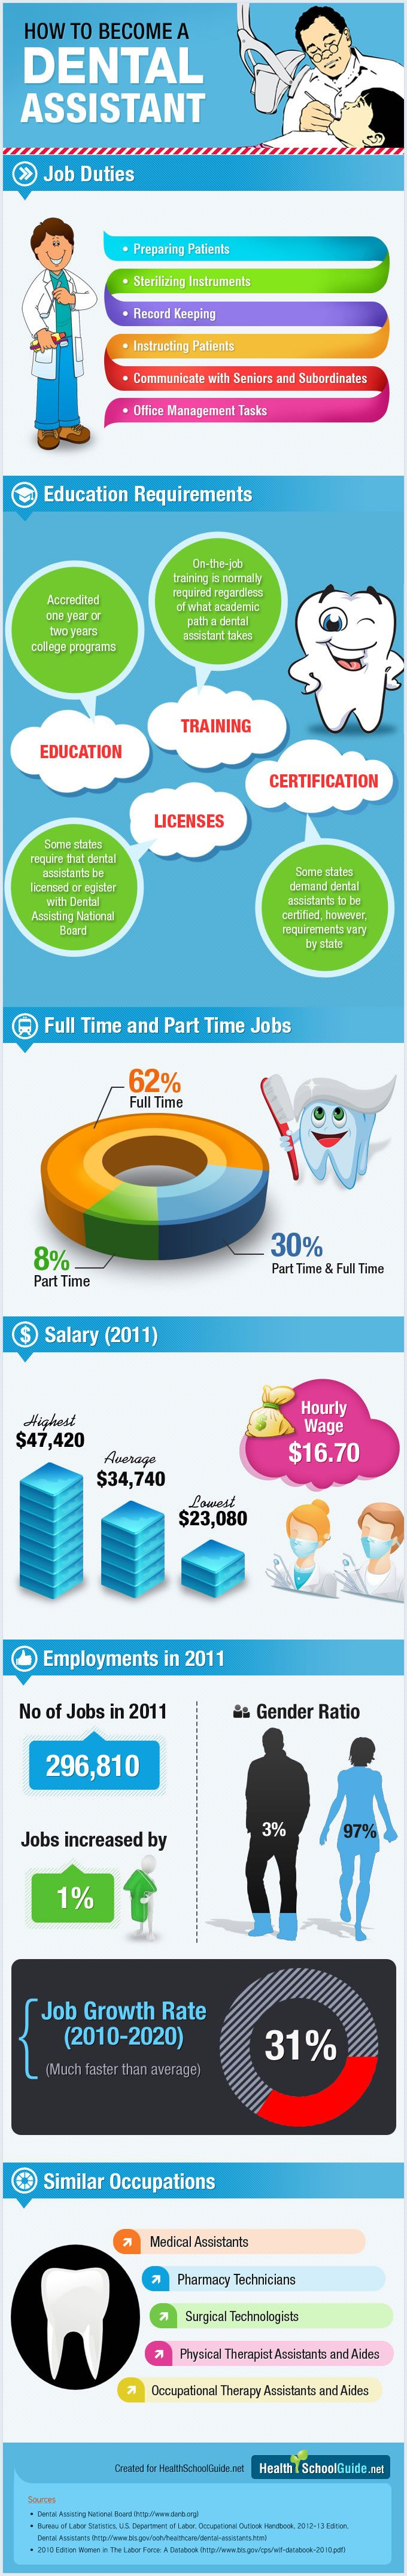 INFOGRAPHIC: HOW TO BECOME A DENTAL ASSISTANT